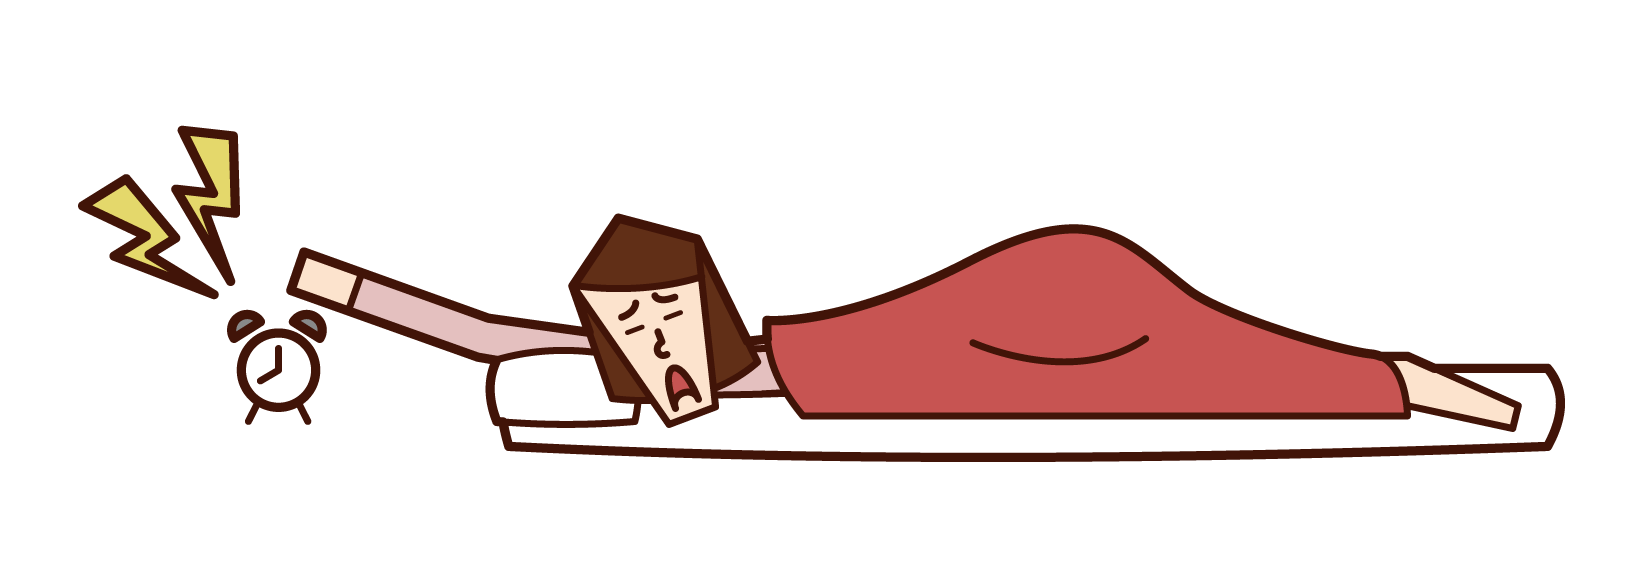 Illustration of a woman who stops alarm clock alarm